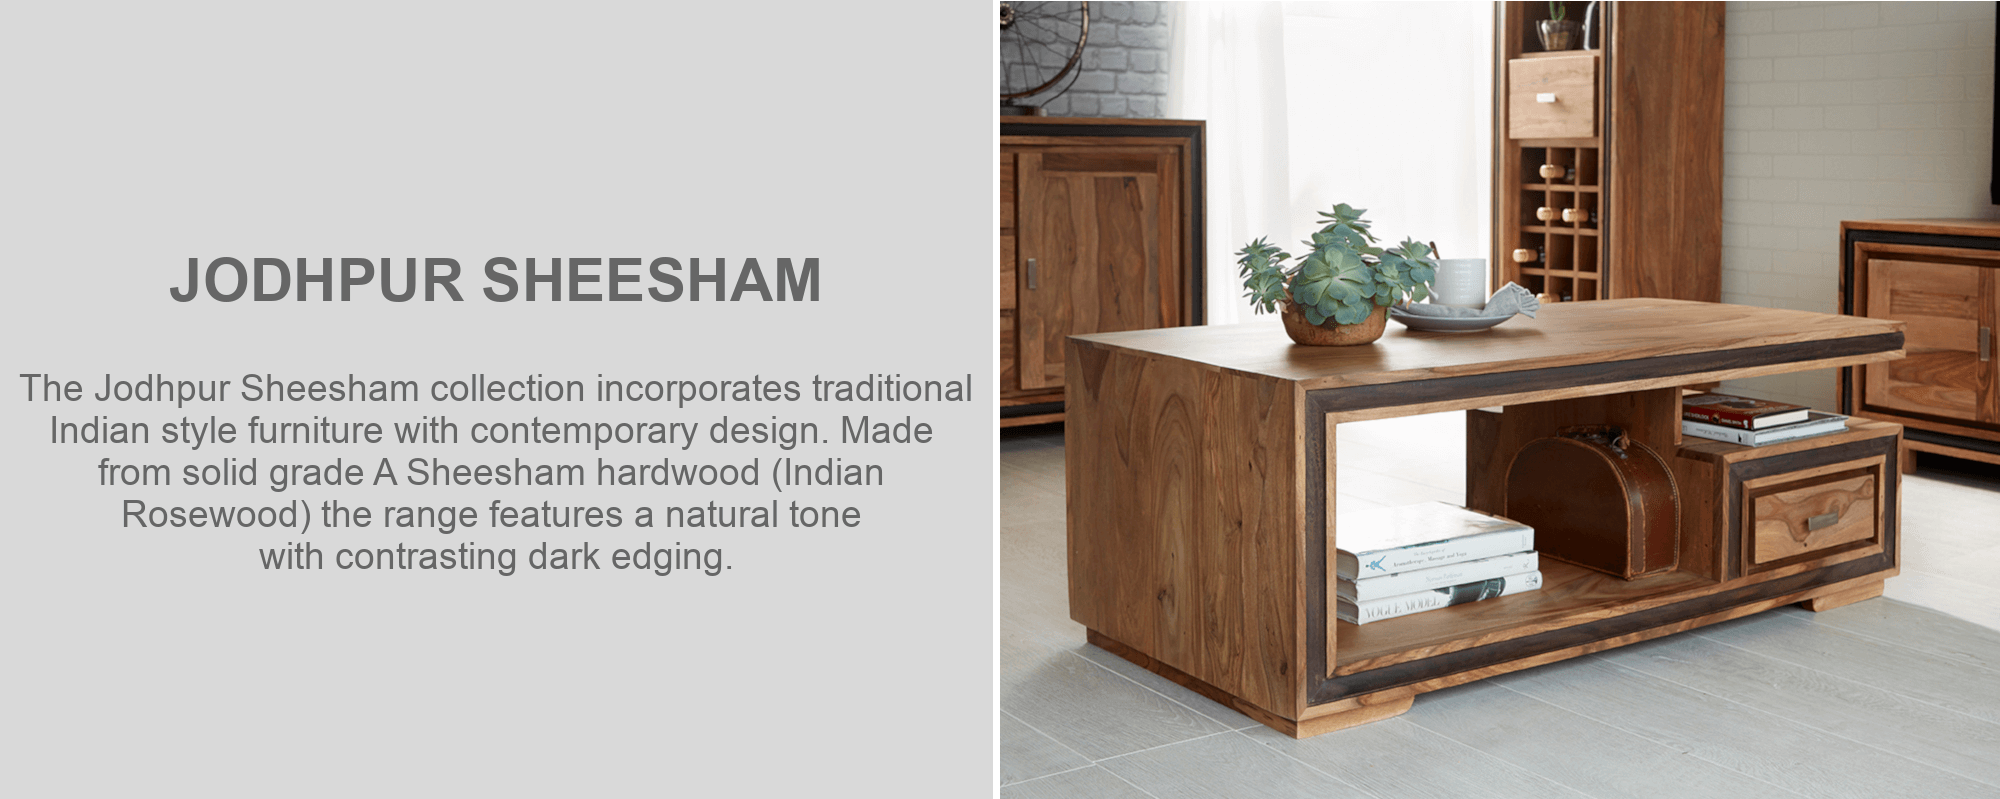 Jodhpur sheesham coffee table furniture